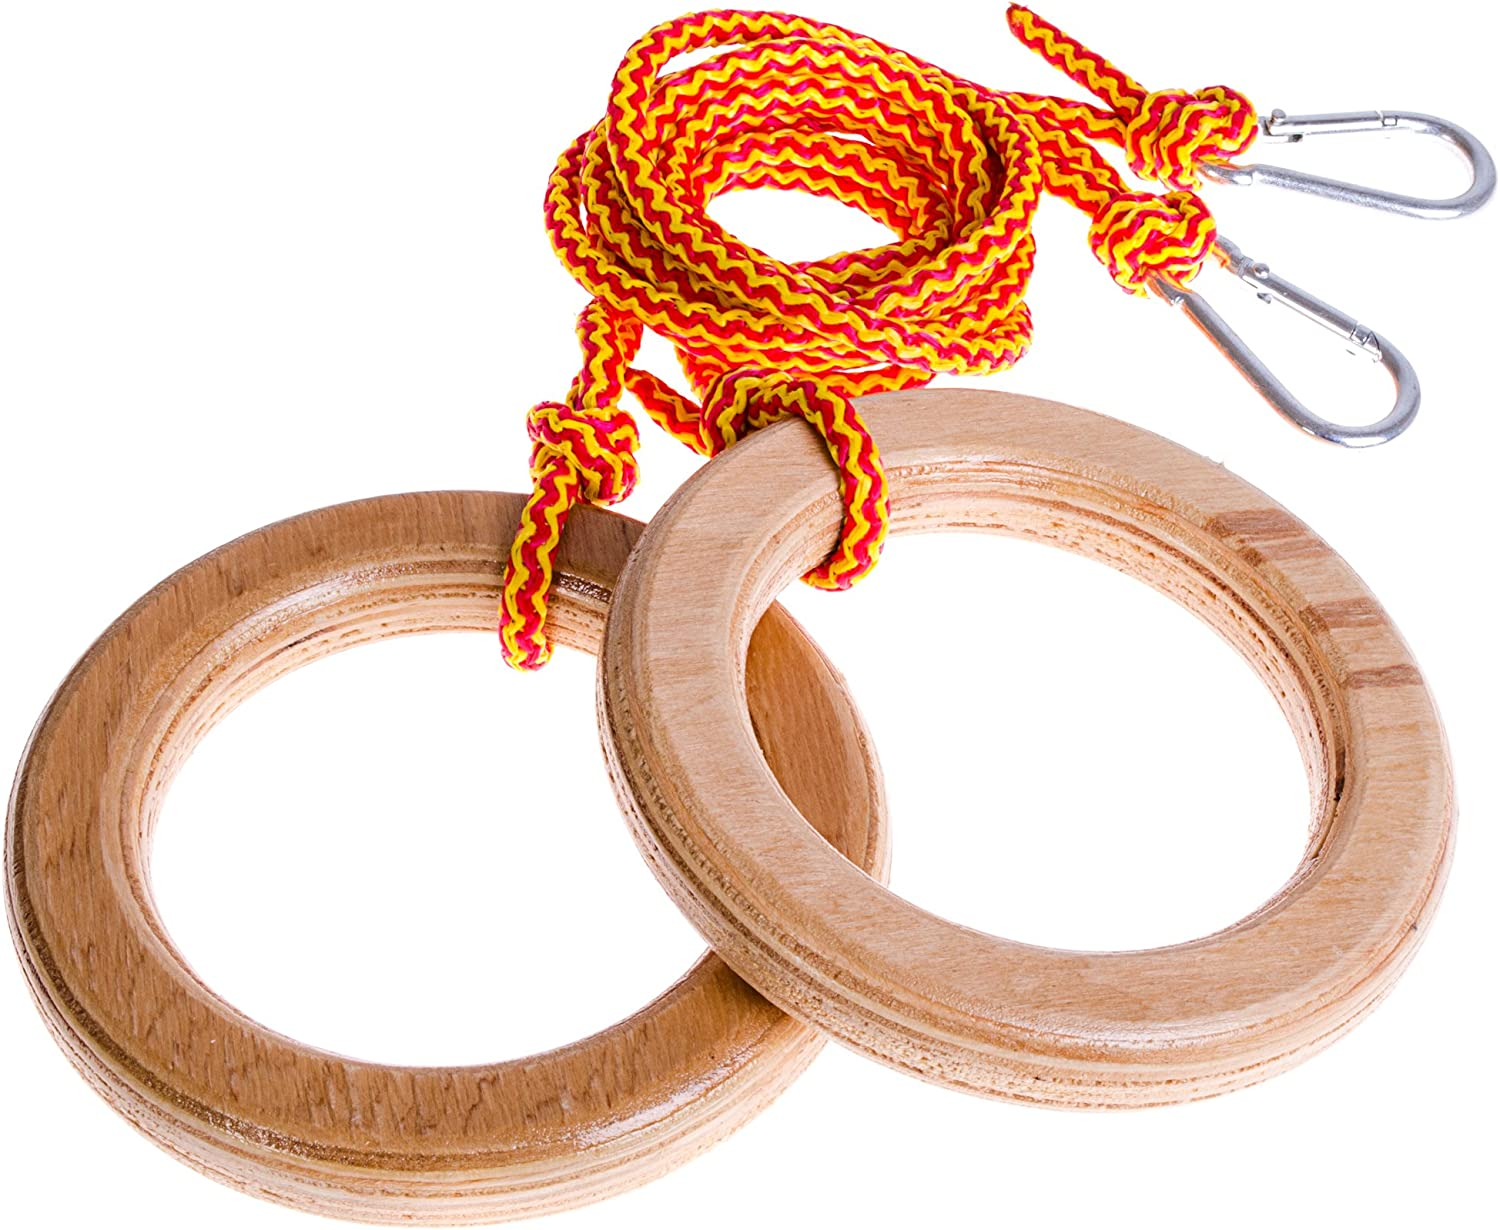 EVAS Kids gym rings - Gymnastics equipment for home for kids and toddler - Accessories for swing set   playground   jungle gym - Monkey rings - Gymnastic toys for indoor play gym